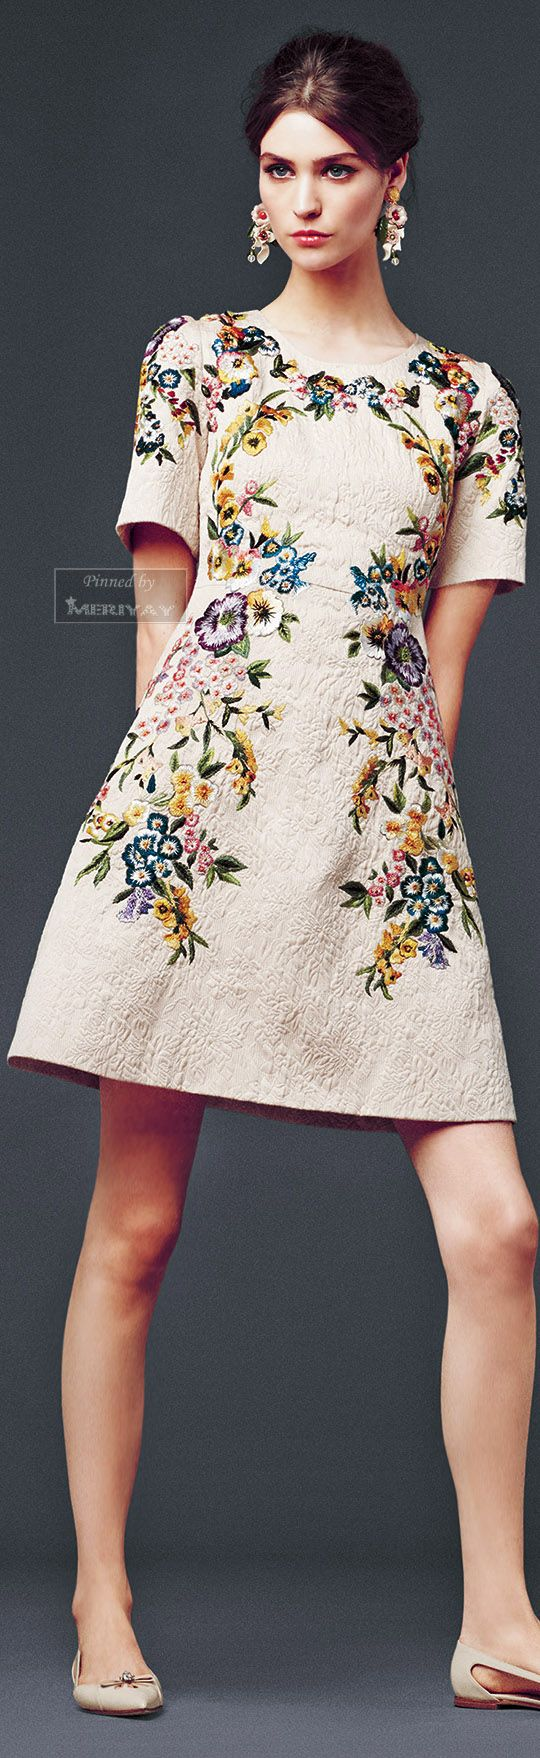 Dolce  Gabbana - Collection Fall Winter 2014 2015.  http://es.pinterest.com/meriyay/fashion-dresses-ii/